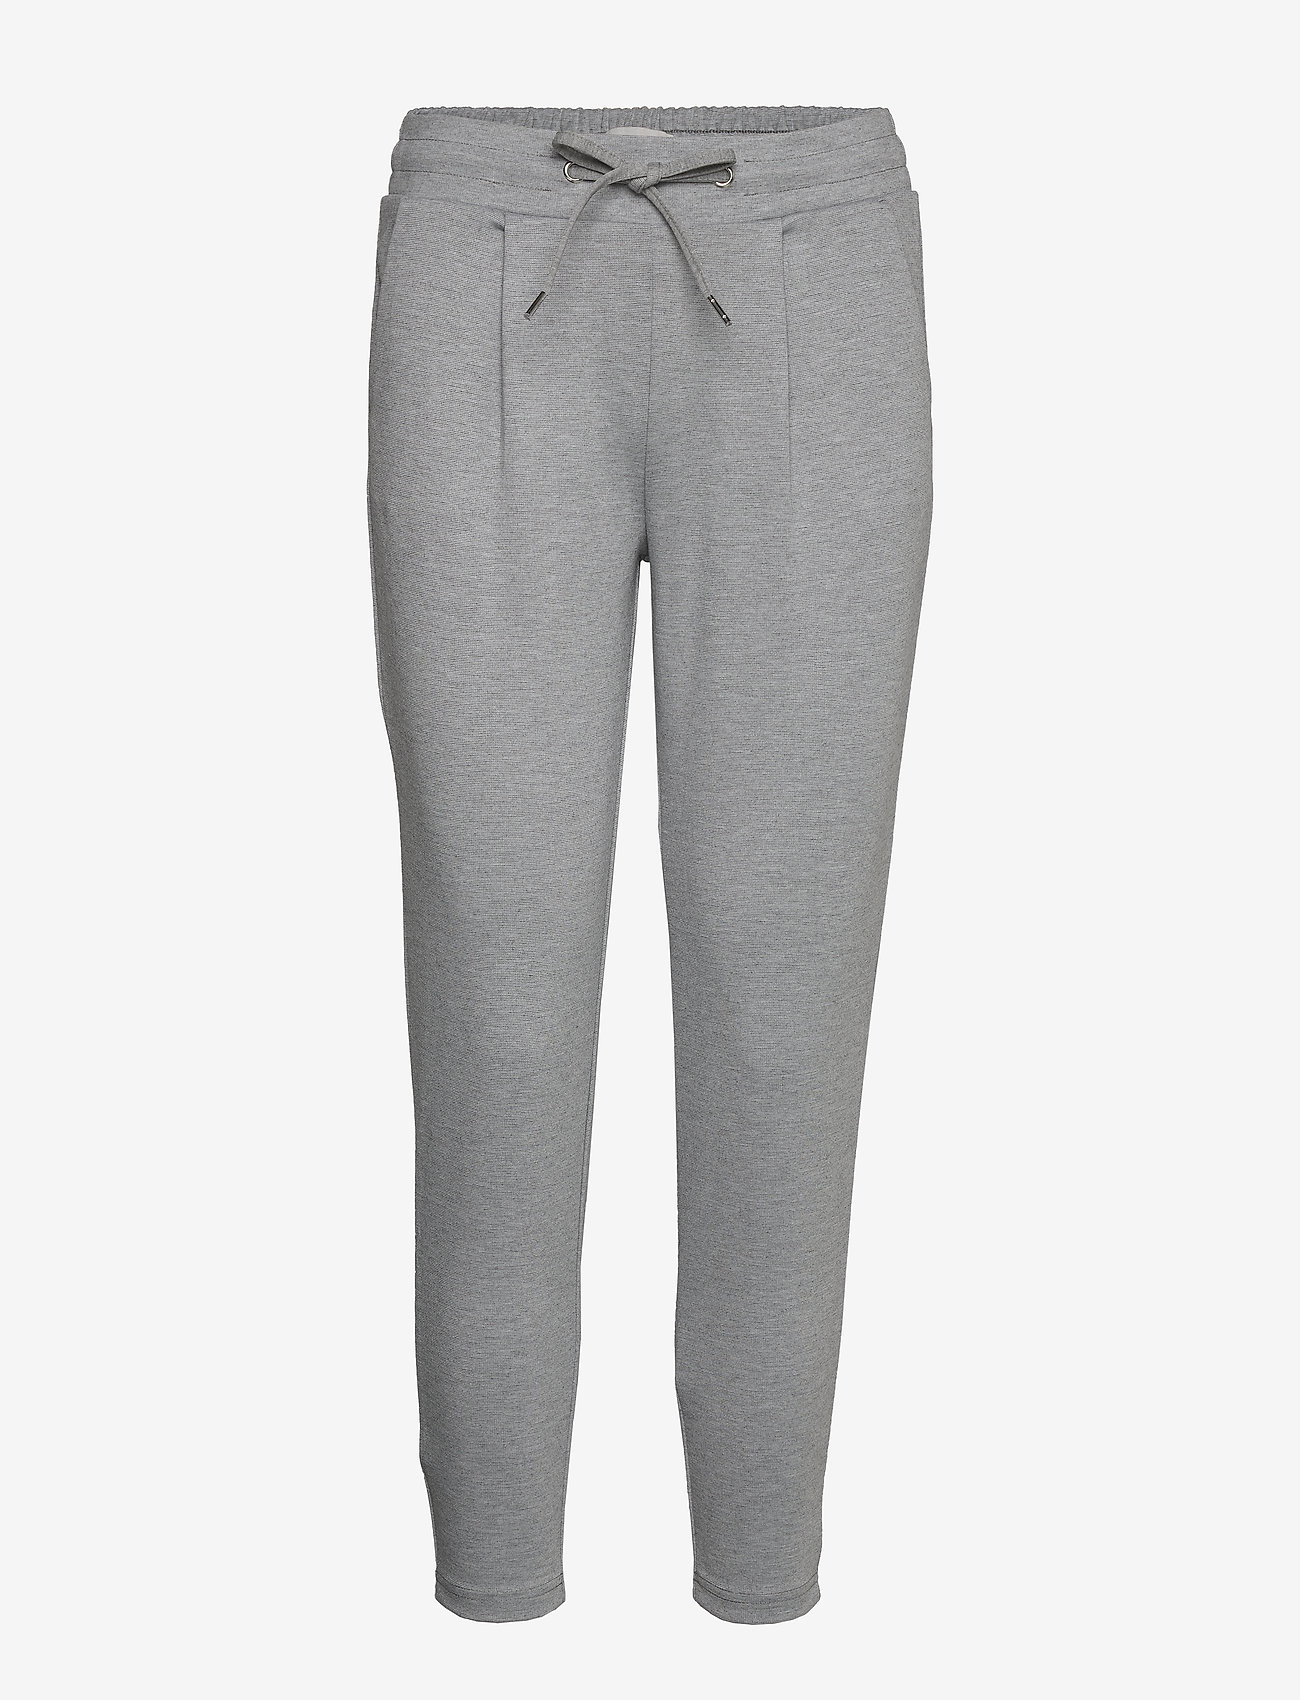 ICHI - IHKATE PA CROPPED - casual trousers - grey melange - 0